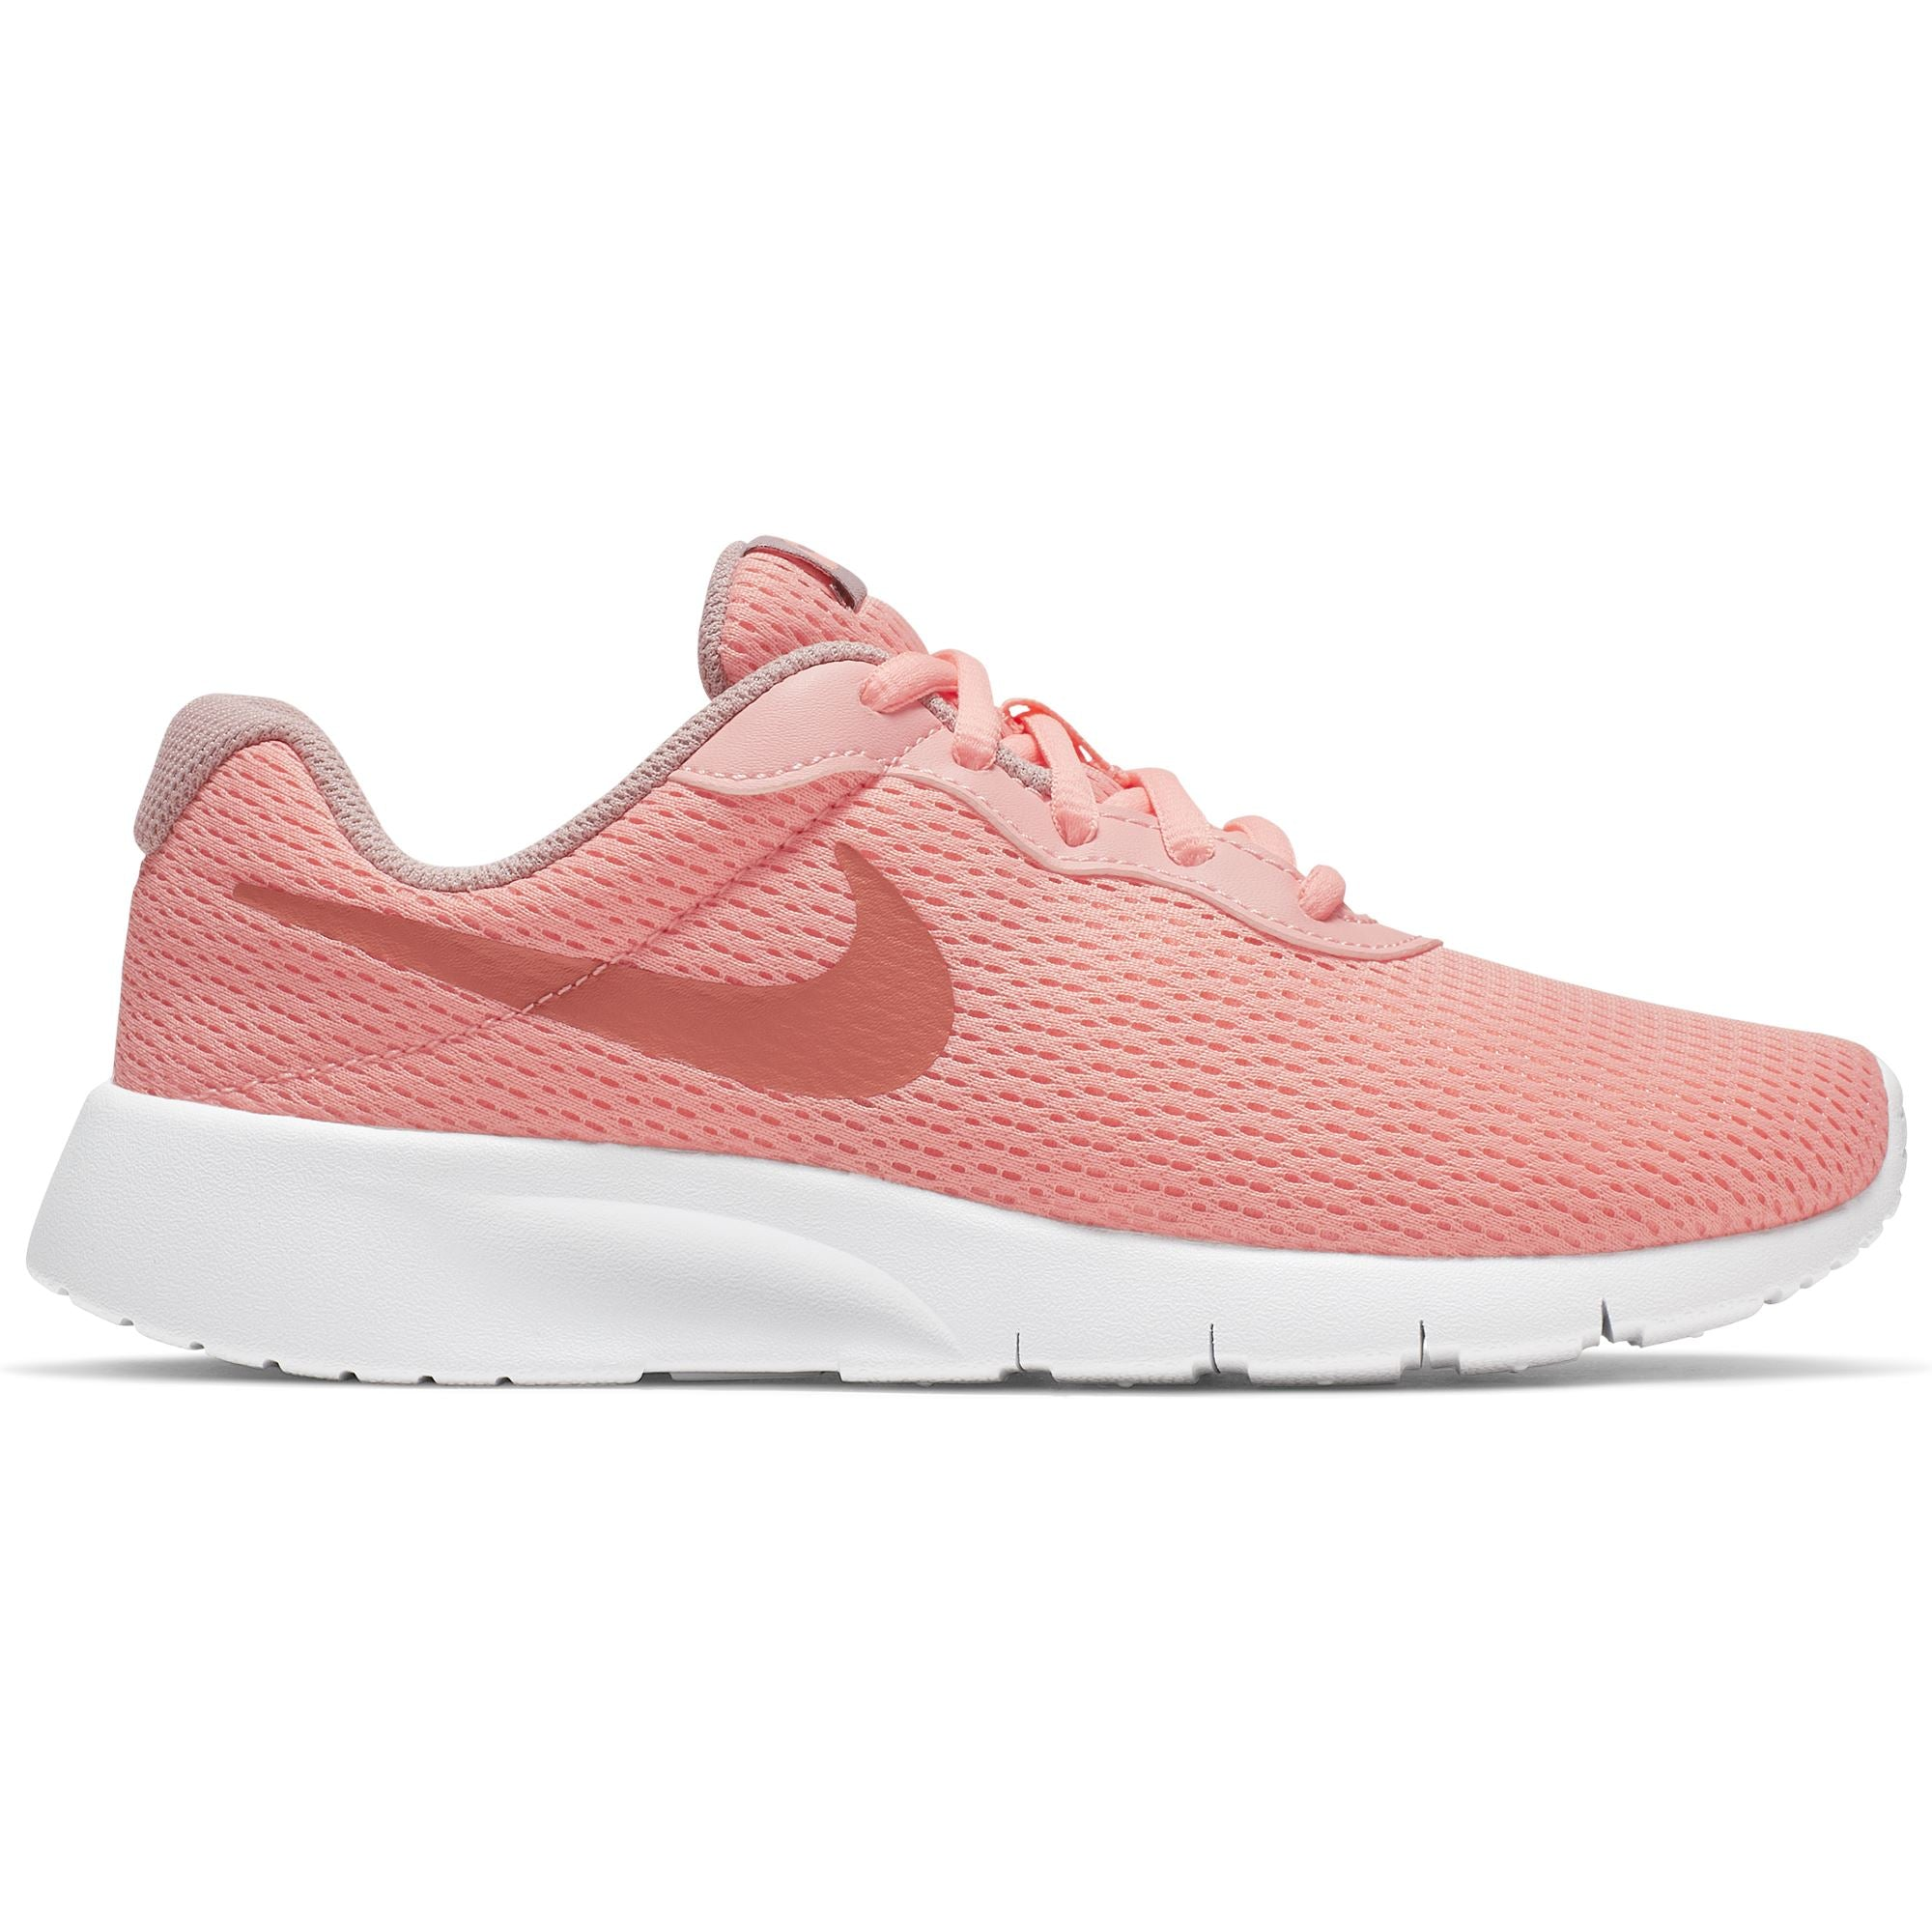 Nike Girls Tanjun (GS) Girls' Shoe - Pink Tint/Mtlc Rose Gold-Atmosphere Grey Q3NIKE Nike